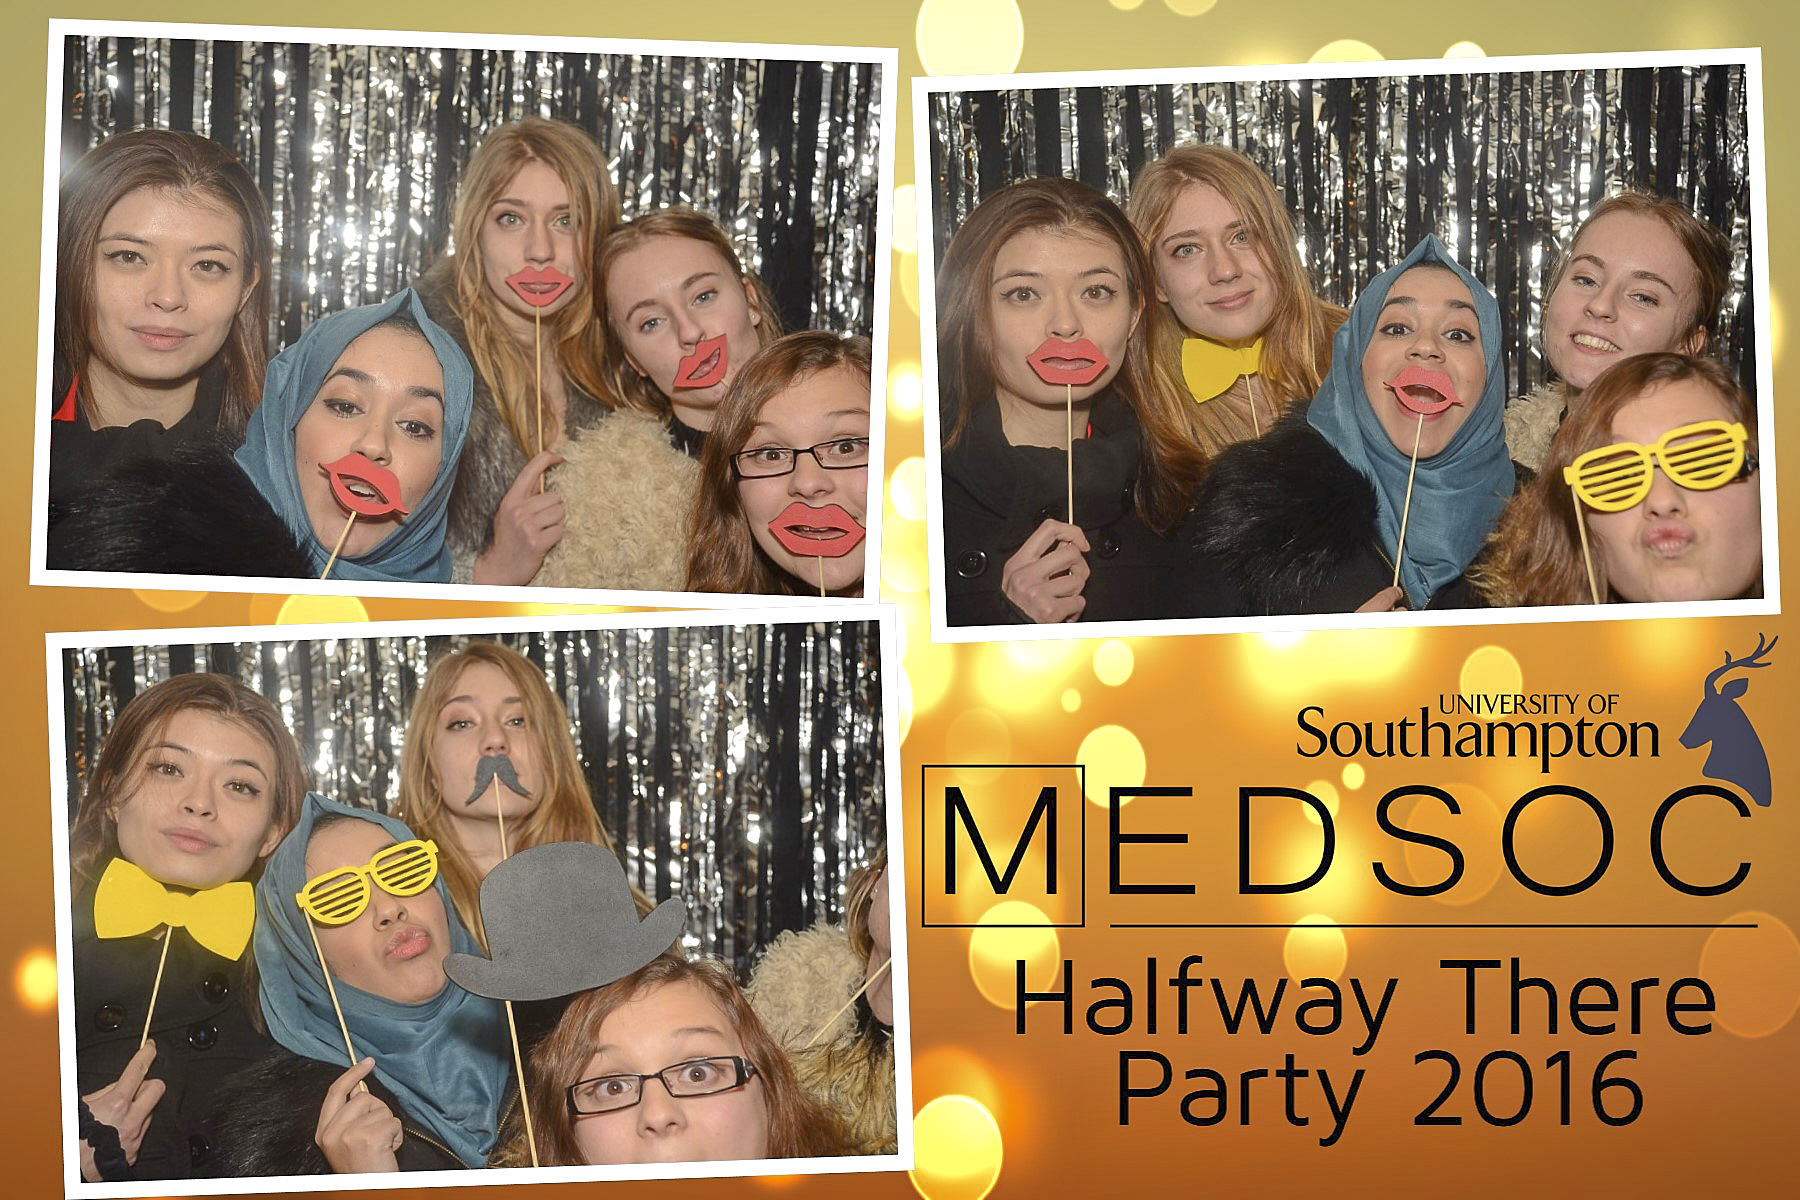 MedSoc Halfway There Party 2016 DS231053.jpg